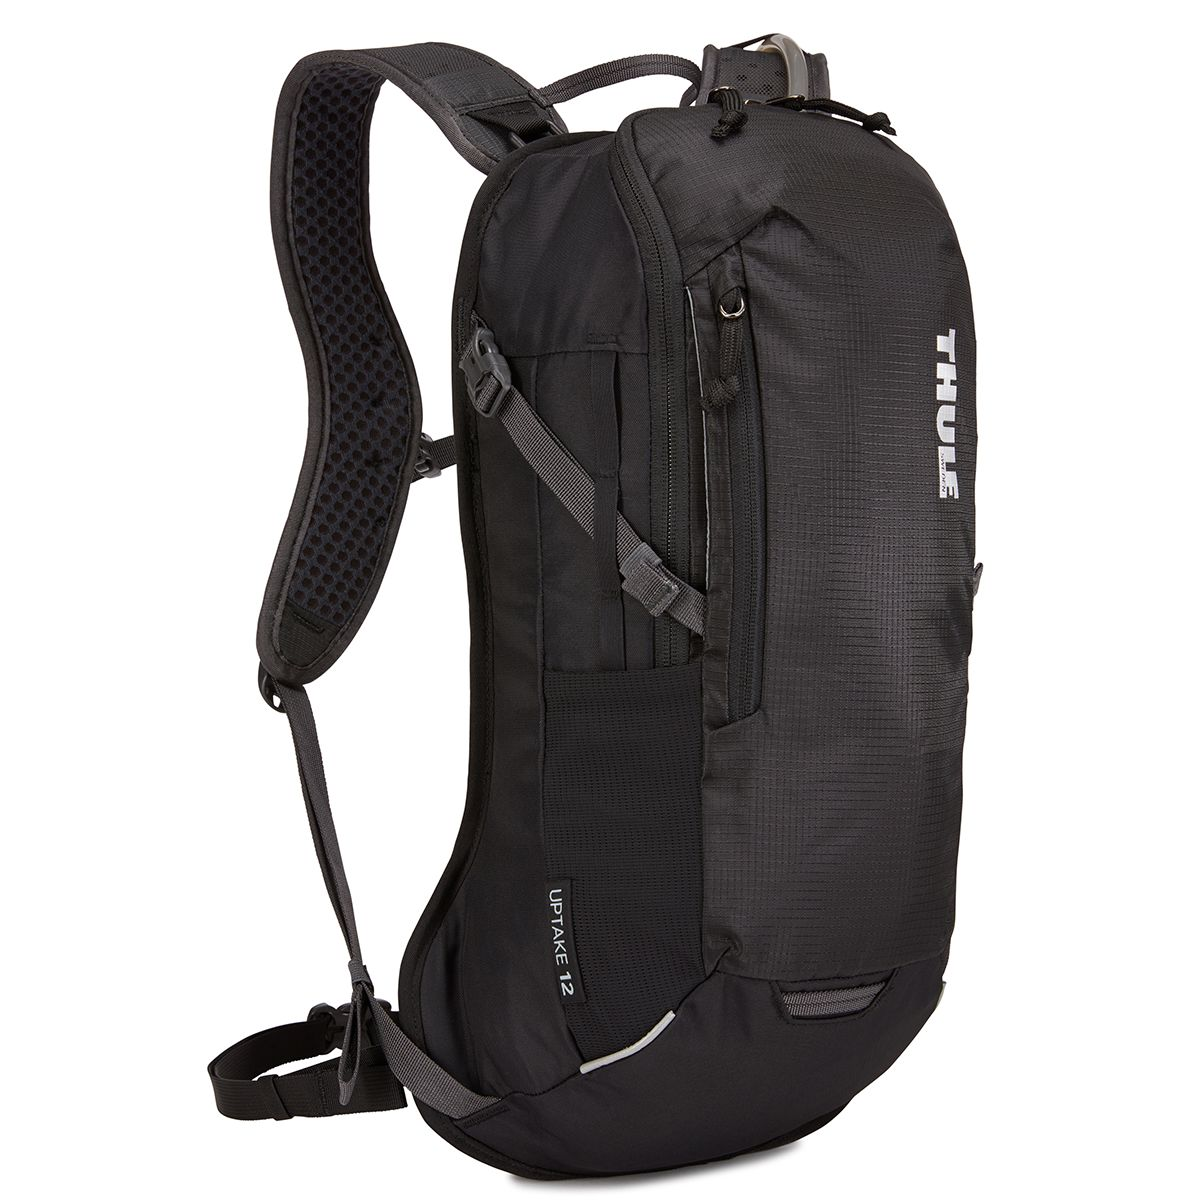 Thule UpTake 12L hydration pack | Travel bags